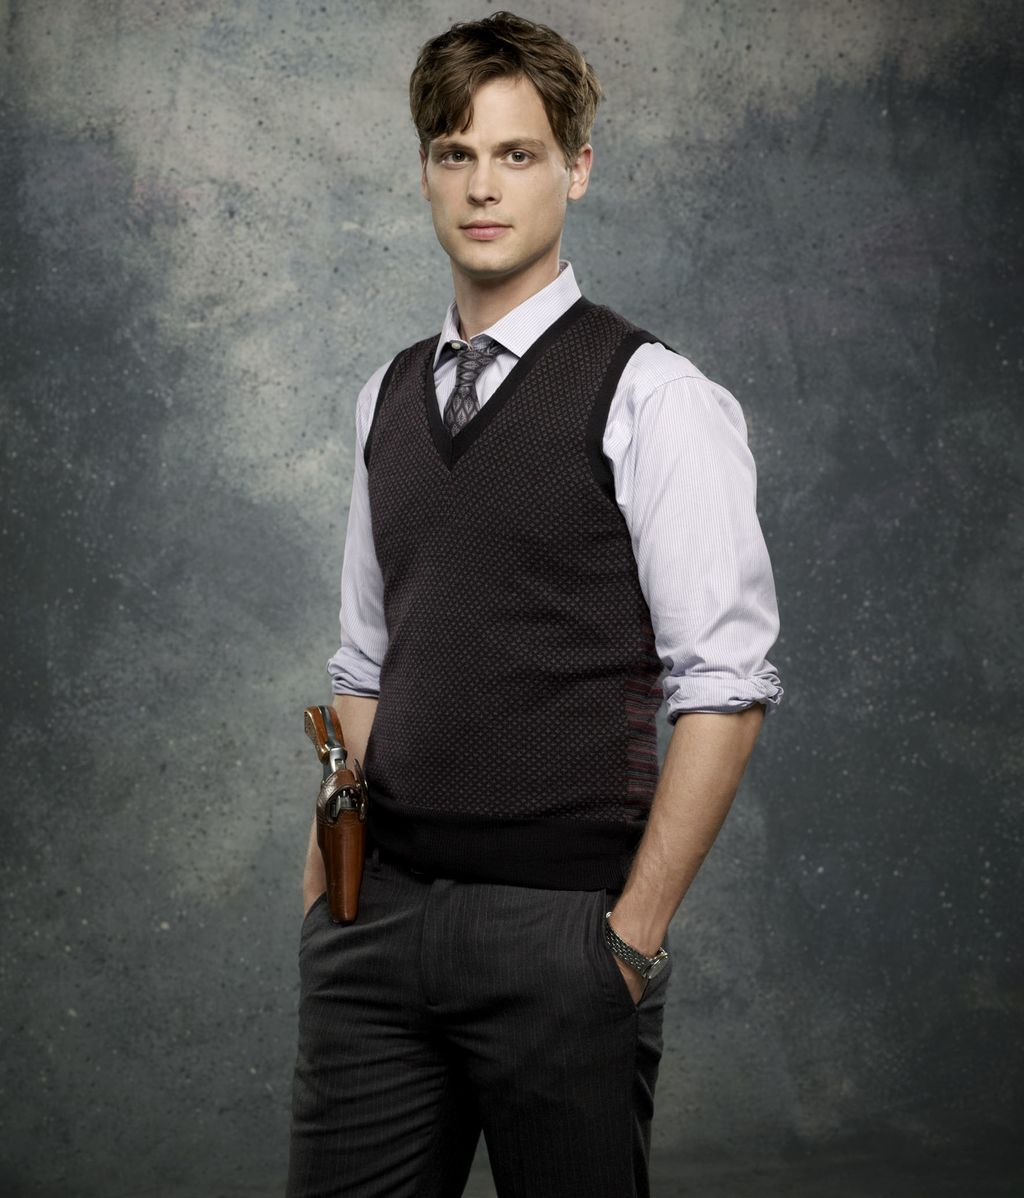 Dr. Spencer Reid (interpretado por Matthew Gray Gubler)